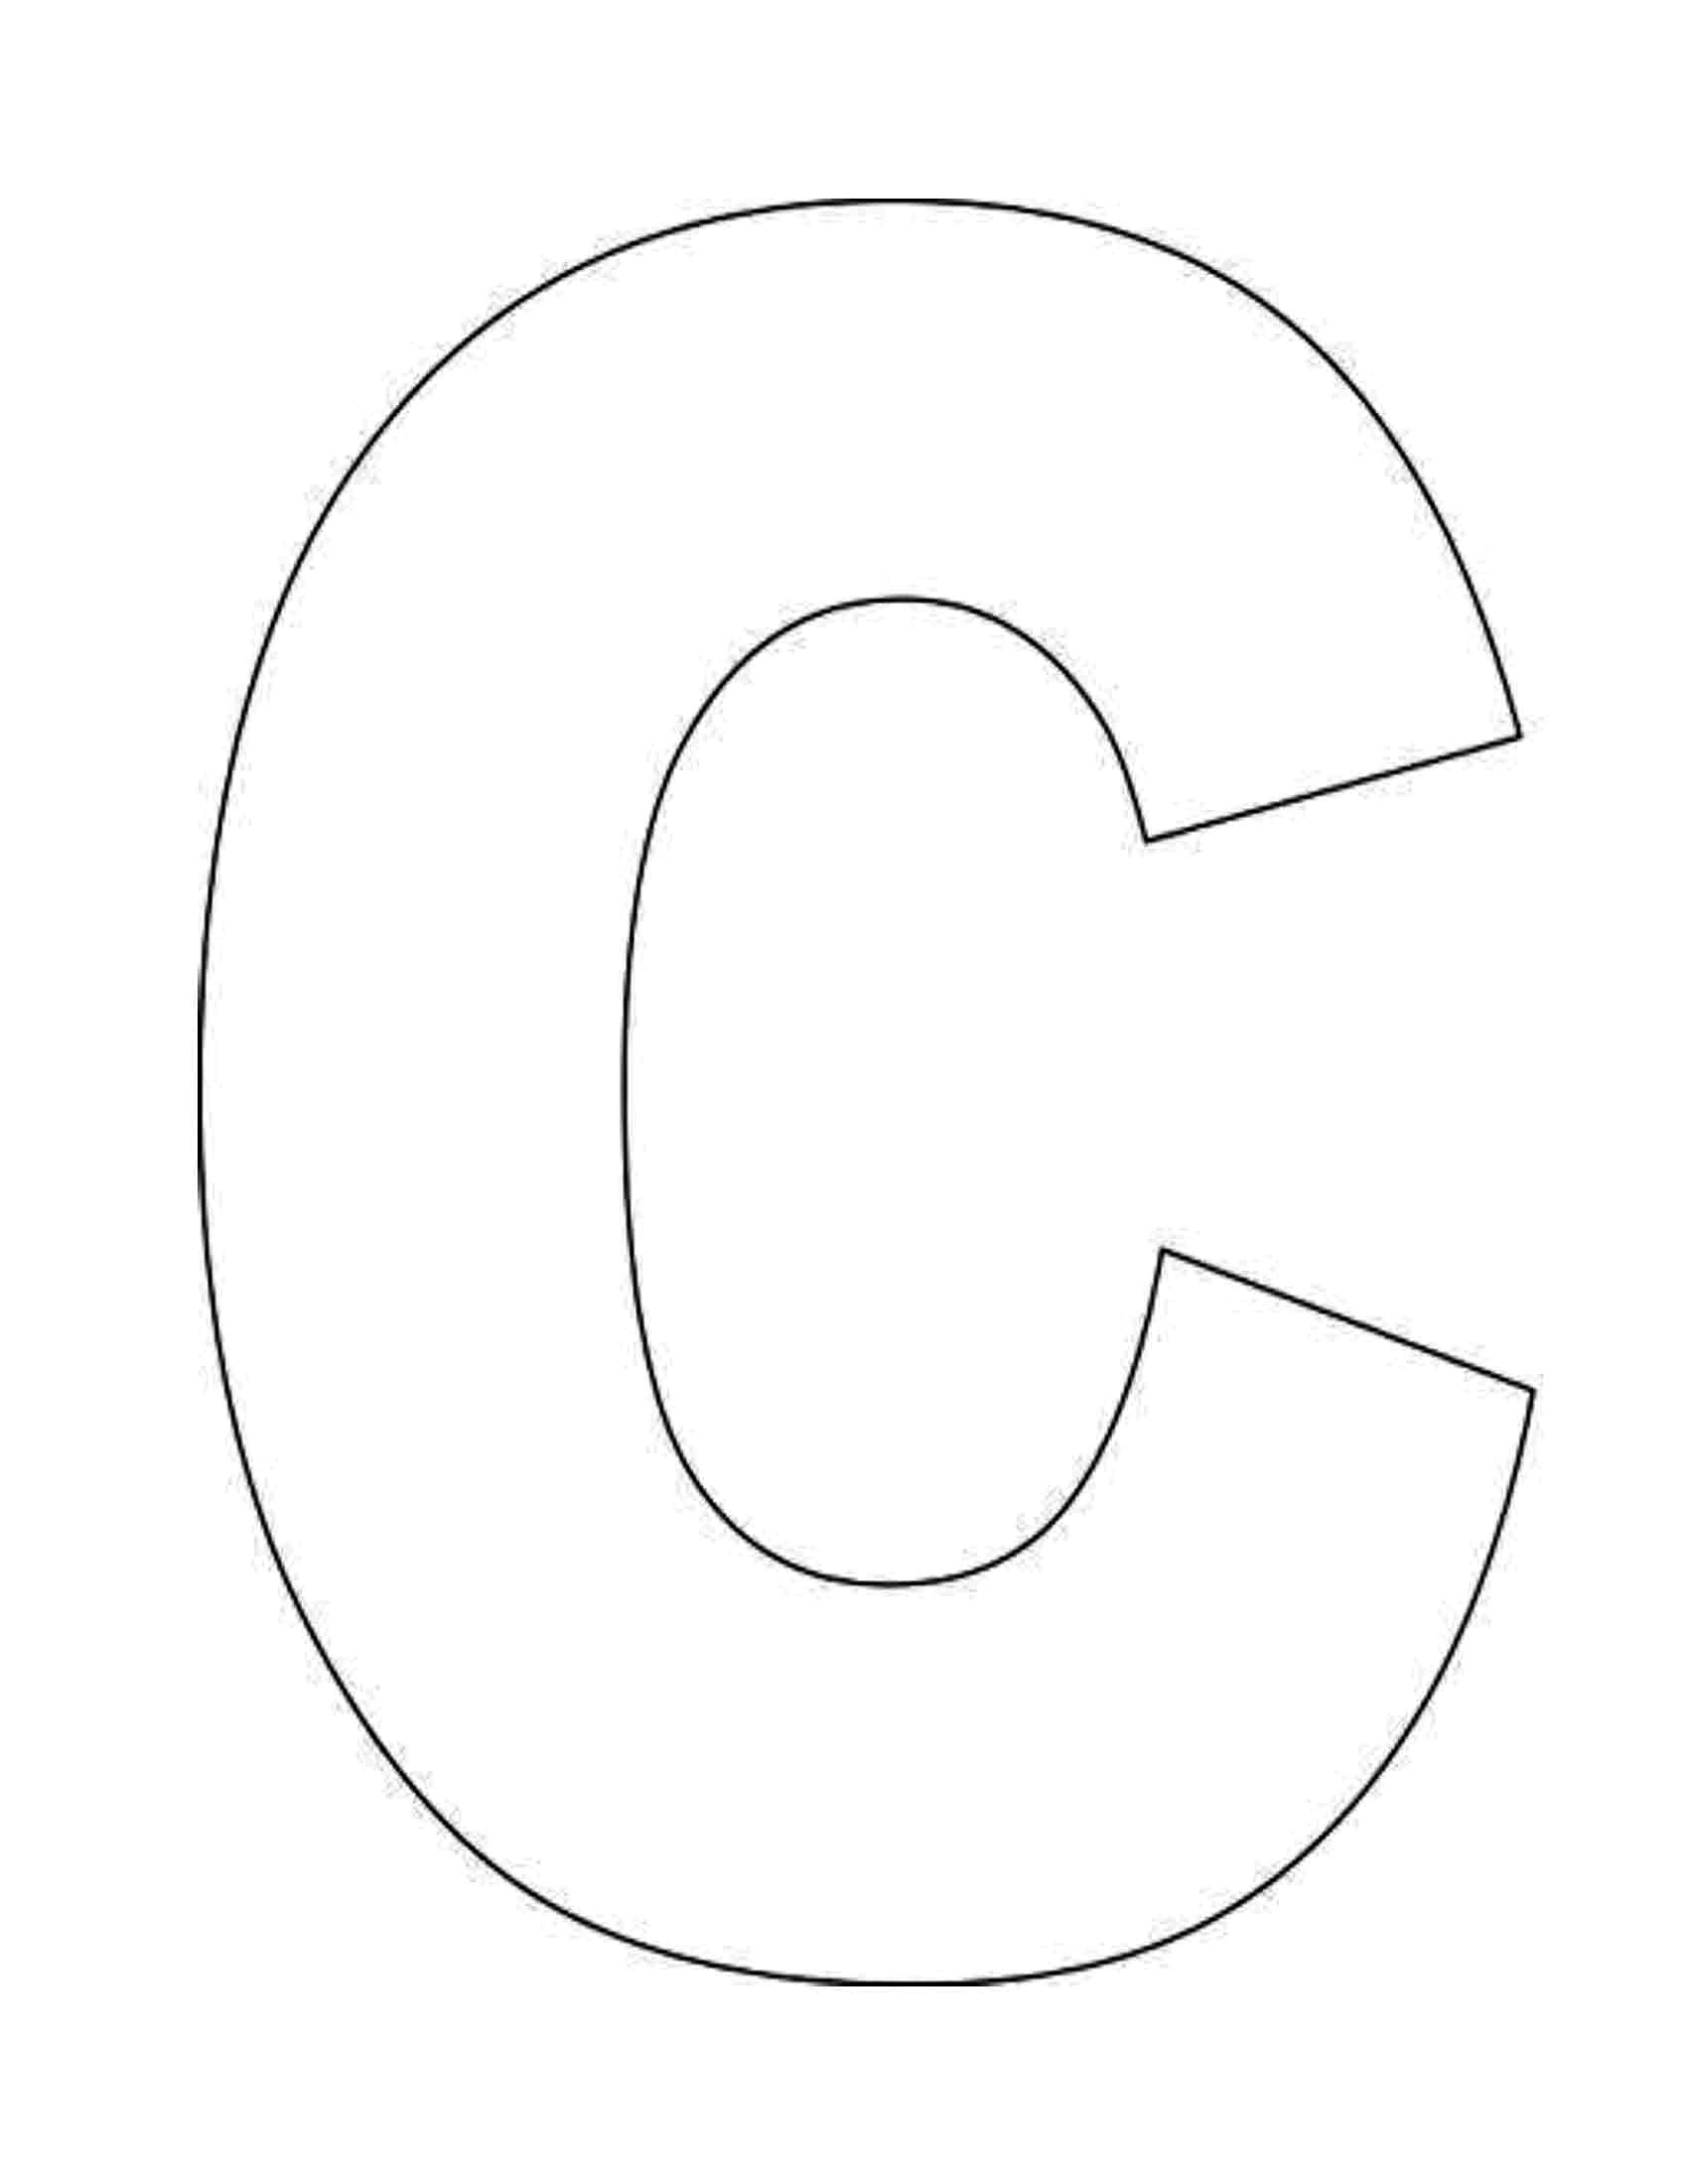 letter c coloring pages printable 9 pics of alphabet letter c coloring pages preschool letter coloring printable c pages